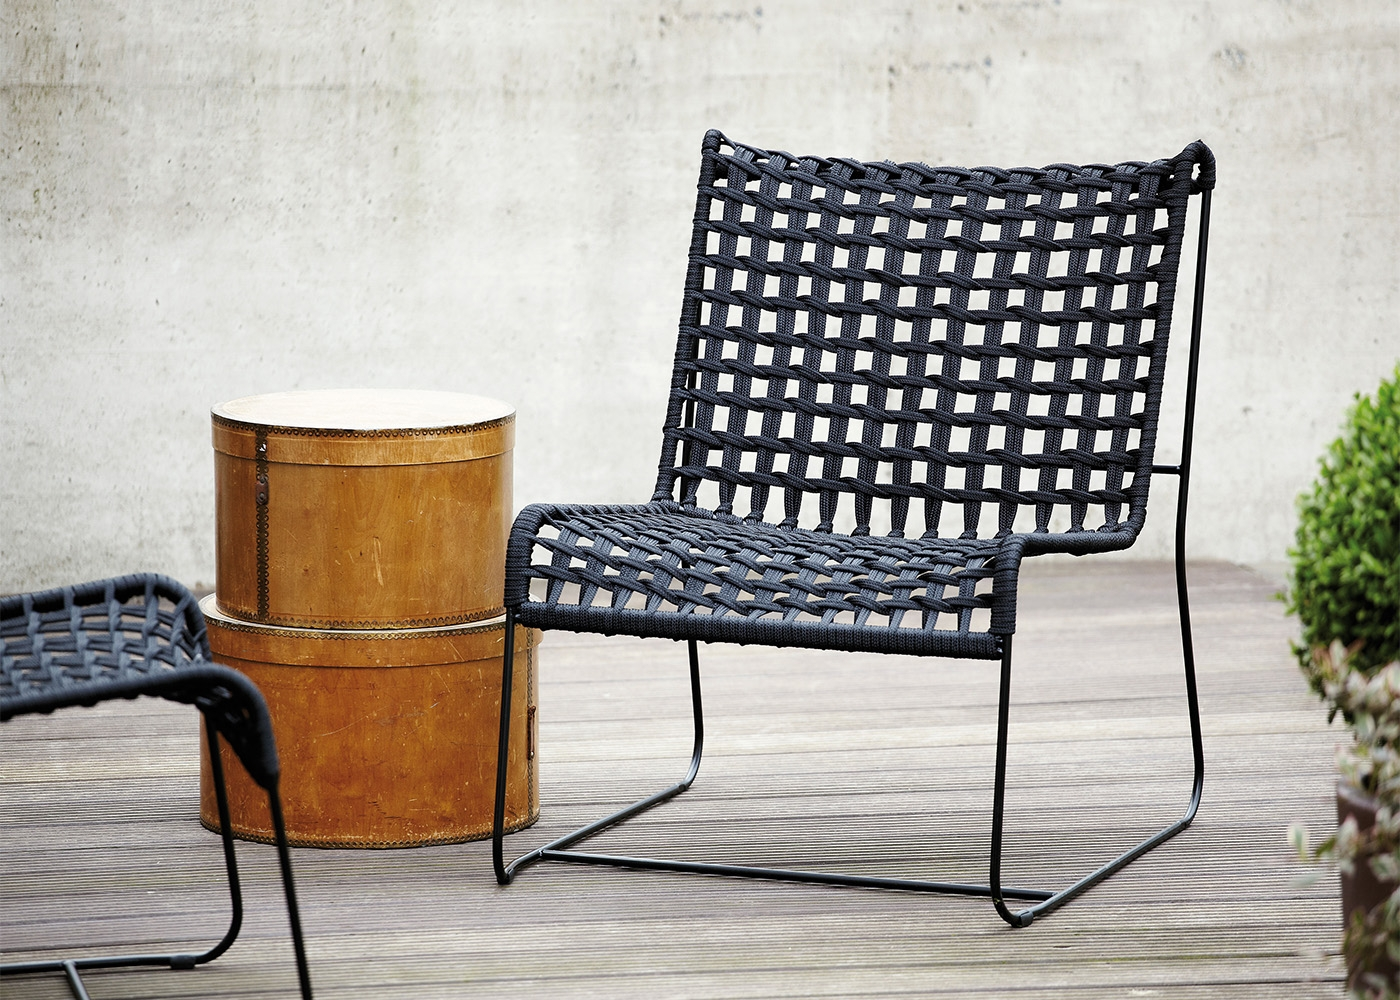 fauteuil d tente pour jardin ou terrasse chez ksl living. Black Bedroom Furniture Sets. Home Design Ideas